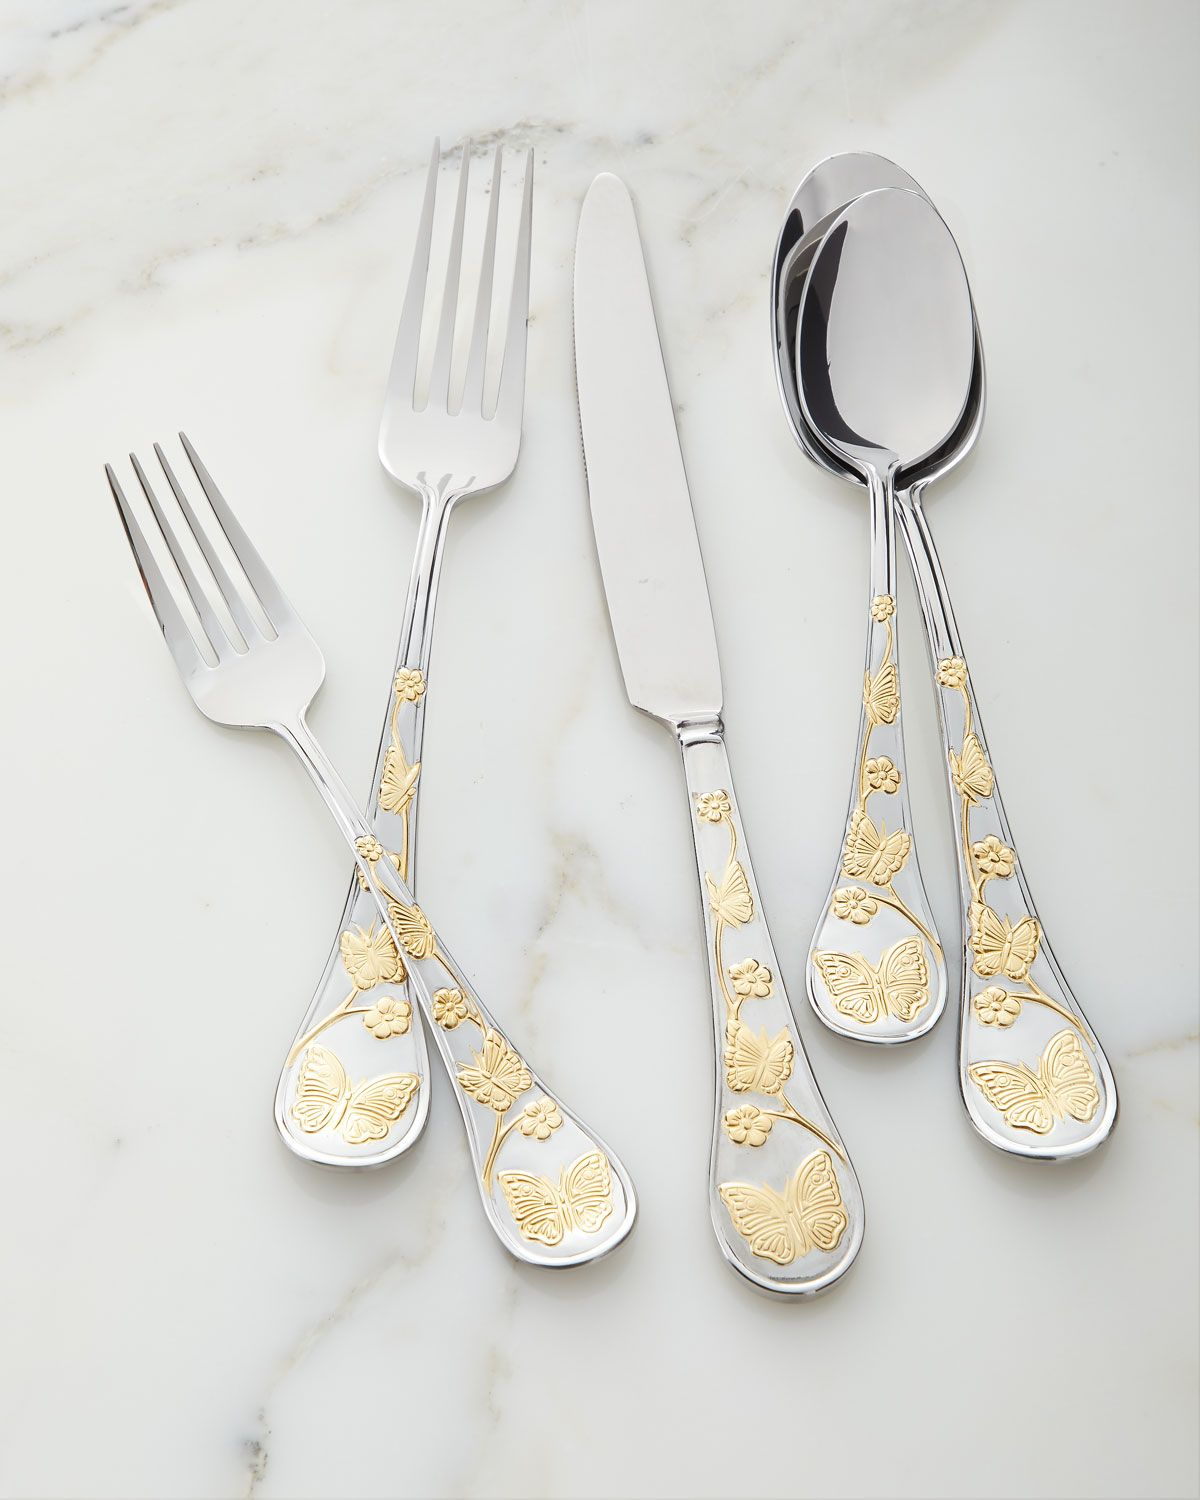 Gold Accent Erfly Flatware Set